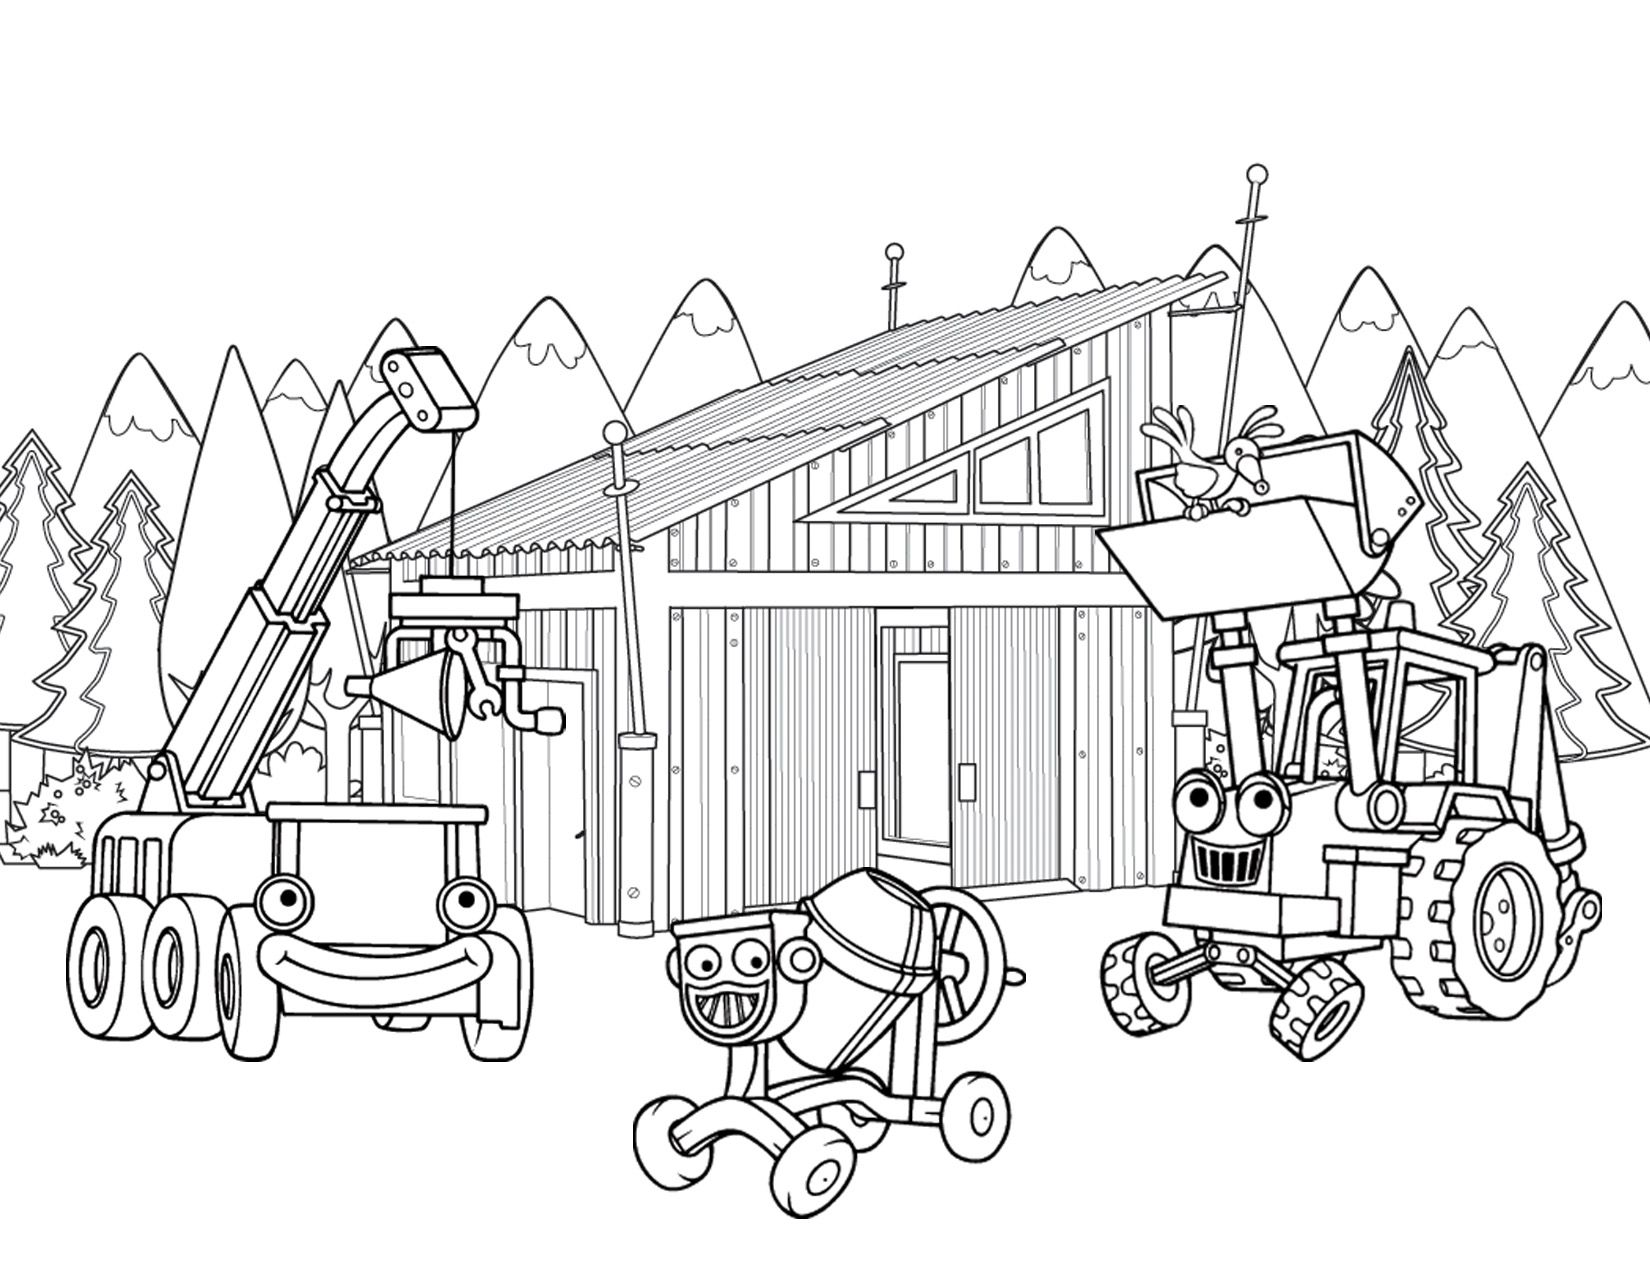 Bob The Builder Coloring Pages (20 Pictures) - Colorine.net | 22742